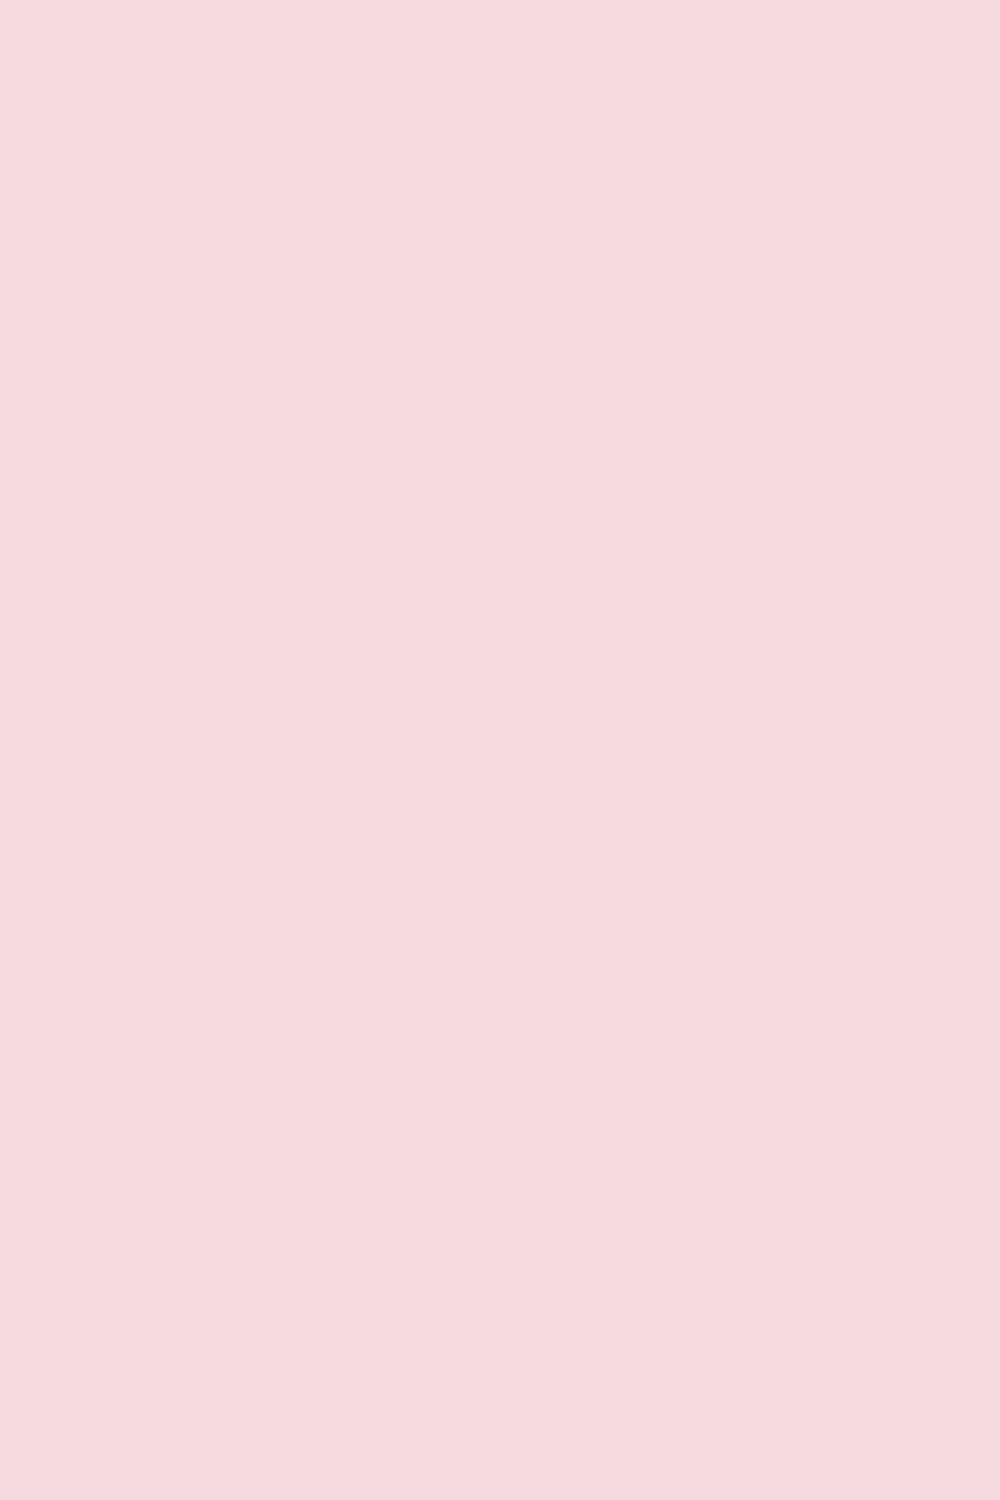 Pin By Children S Minnesota On Brand Colors Pastel Pink Wallpaper Pink Wallpaper Solid Color Backgrounds